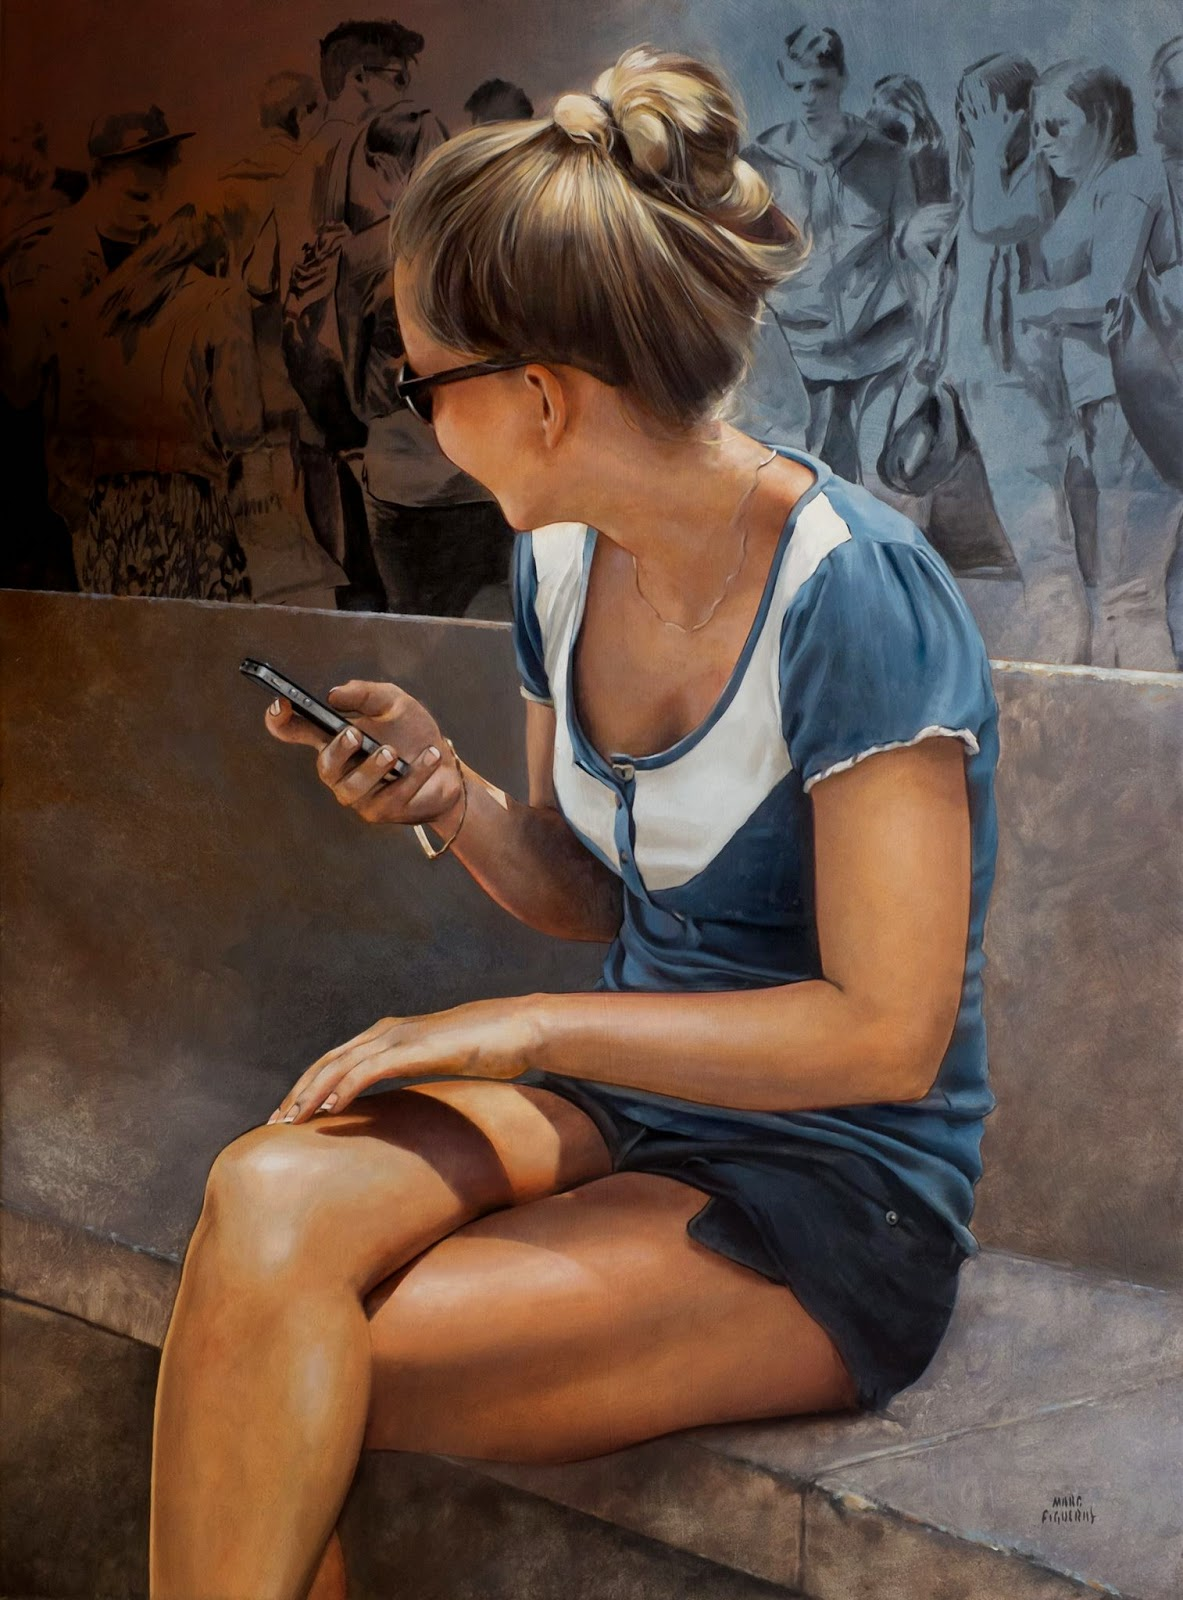 Hyper Realistic Girls Figure Painting By Marc Figueras (11)